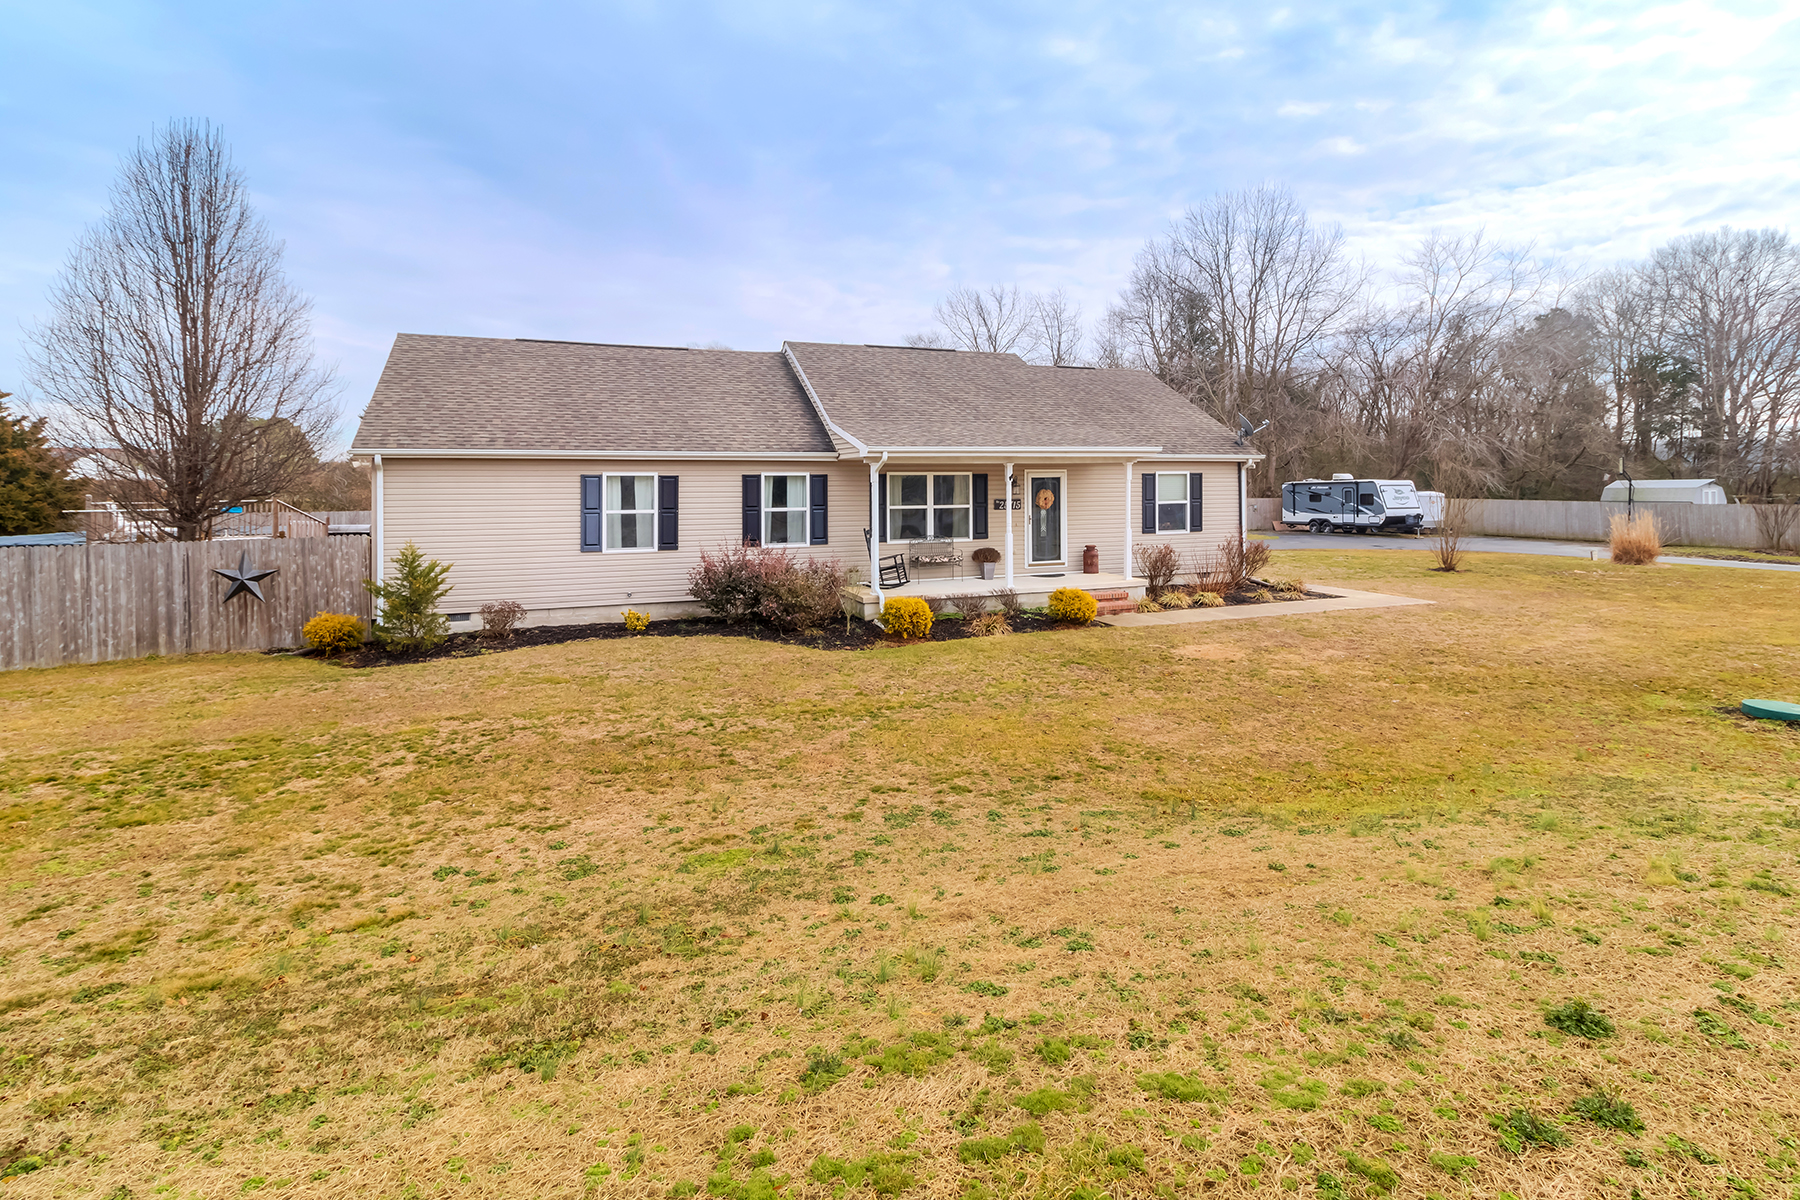 Single Family Home for Sale at 25715 Line Rd , Seaford, DE 19973 25715 Line Rd Seaford, Delaware 19973 United States